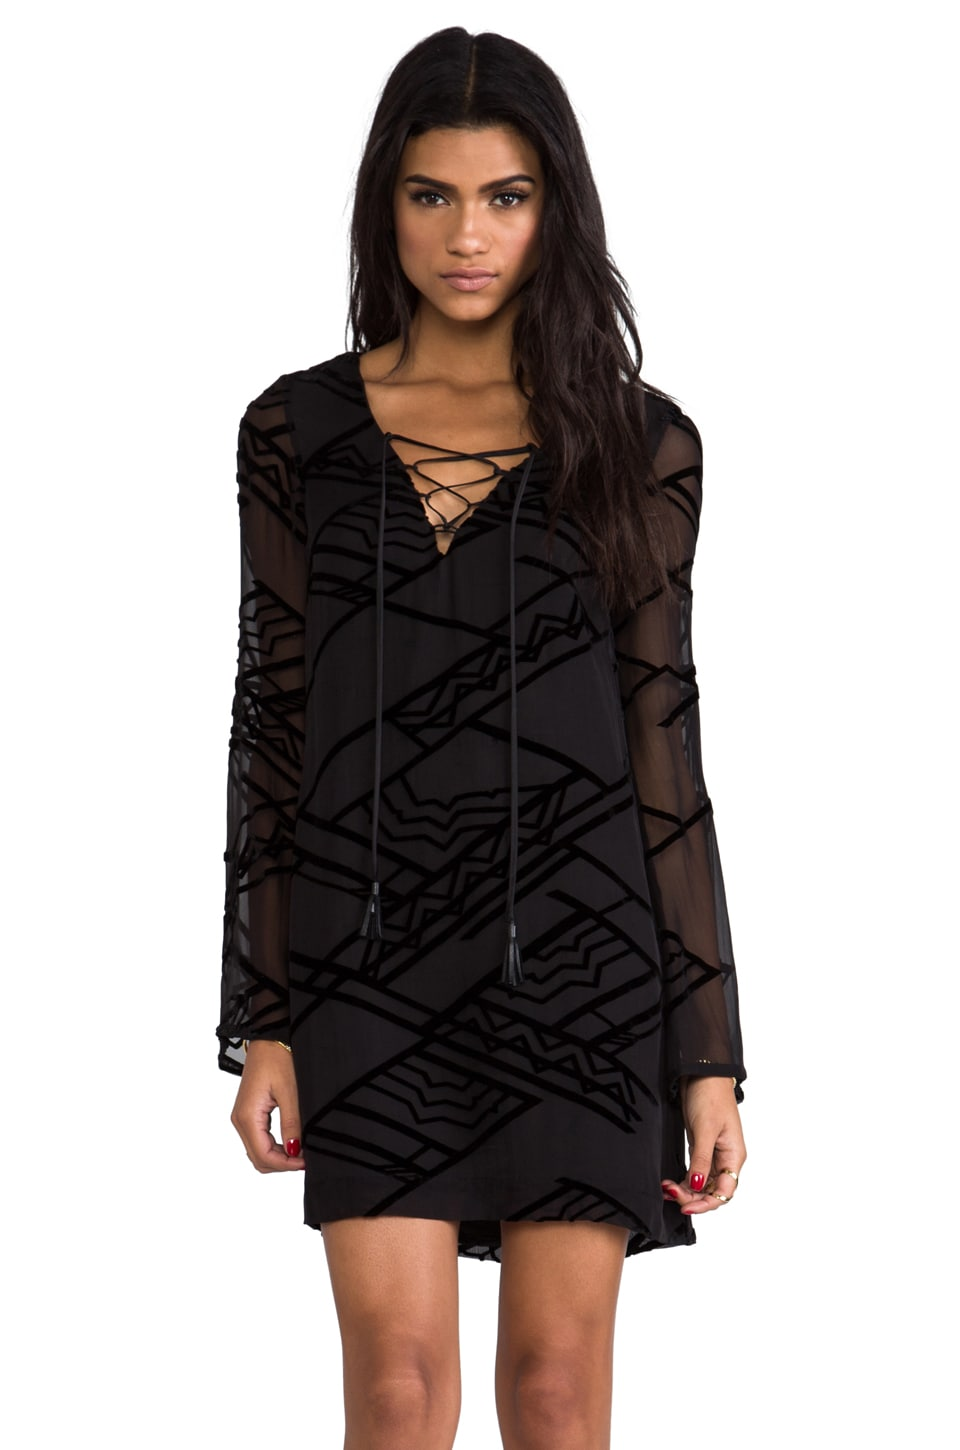 Twelfth Street By Cynthia Vincent Tie Front Shift Dress in Black